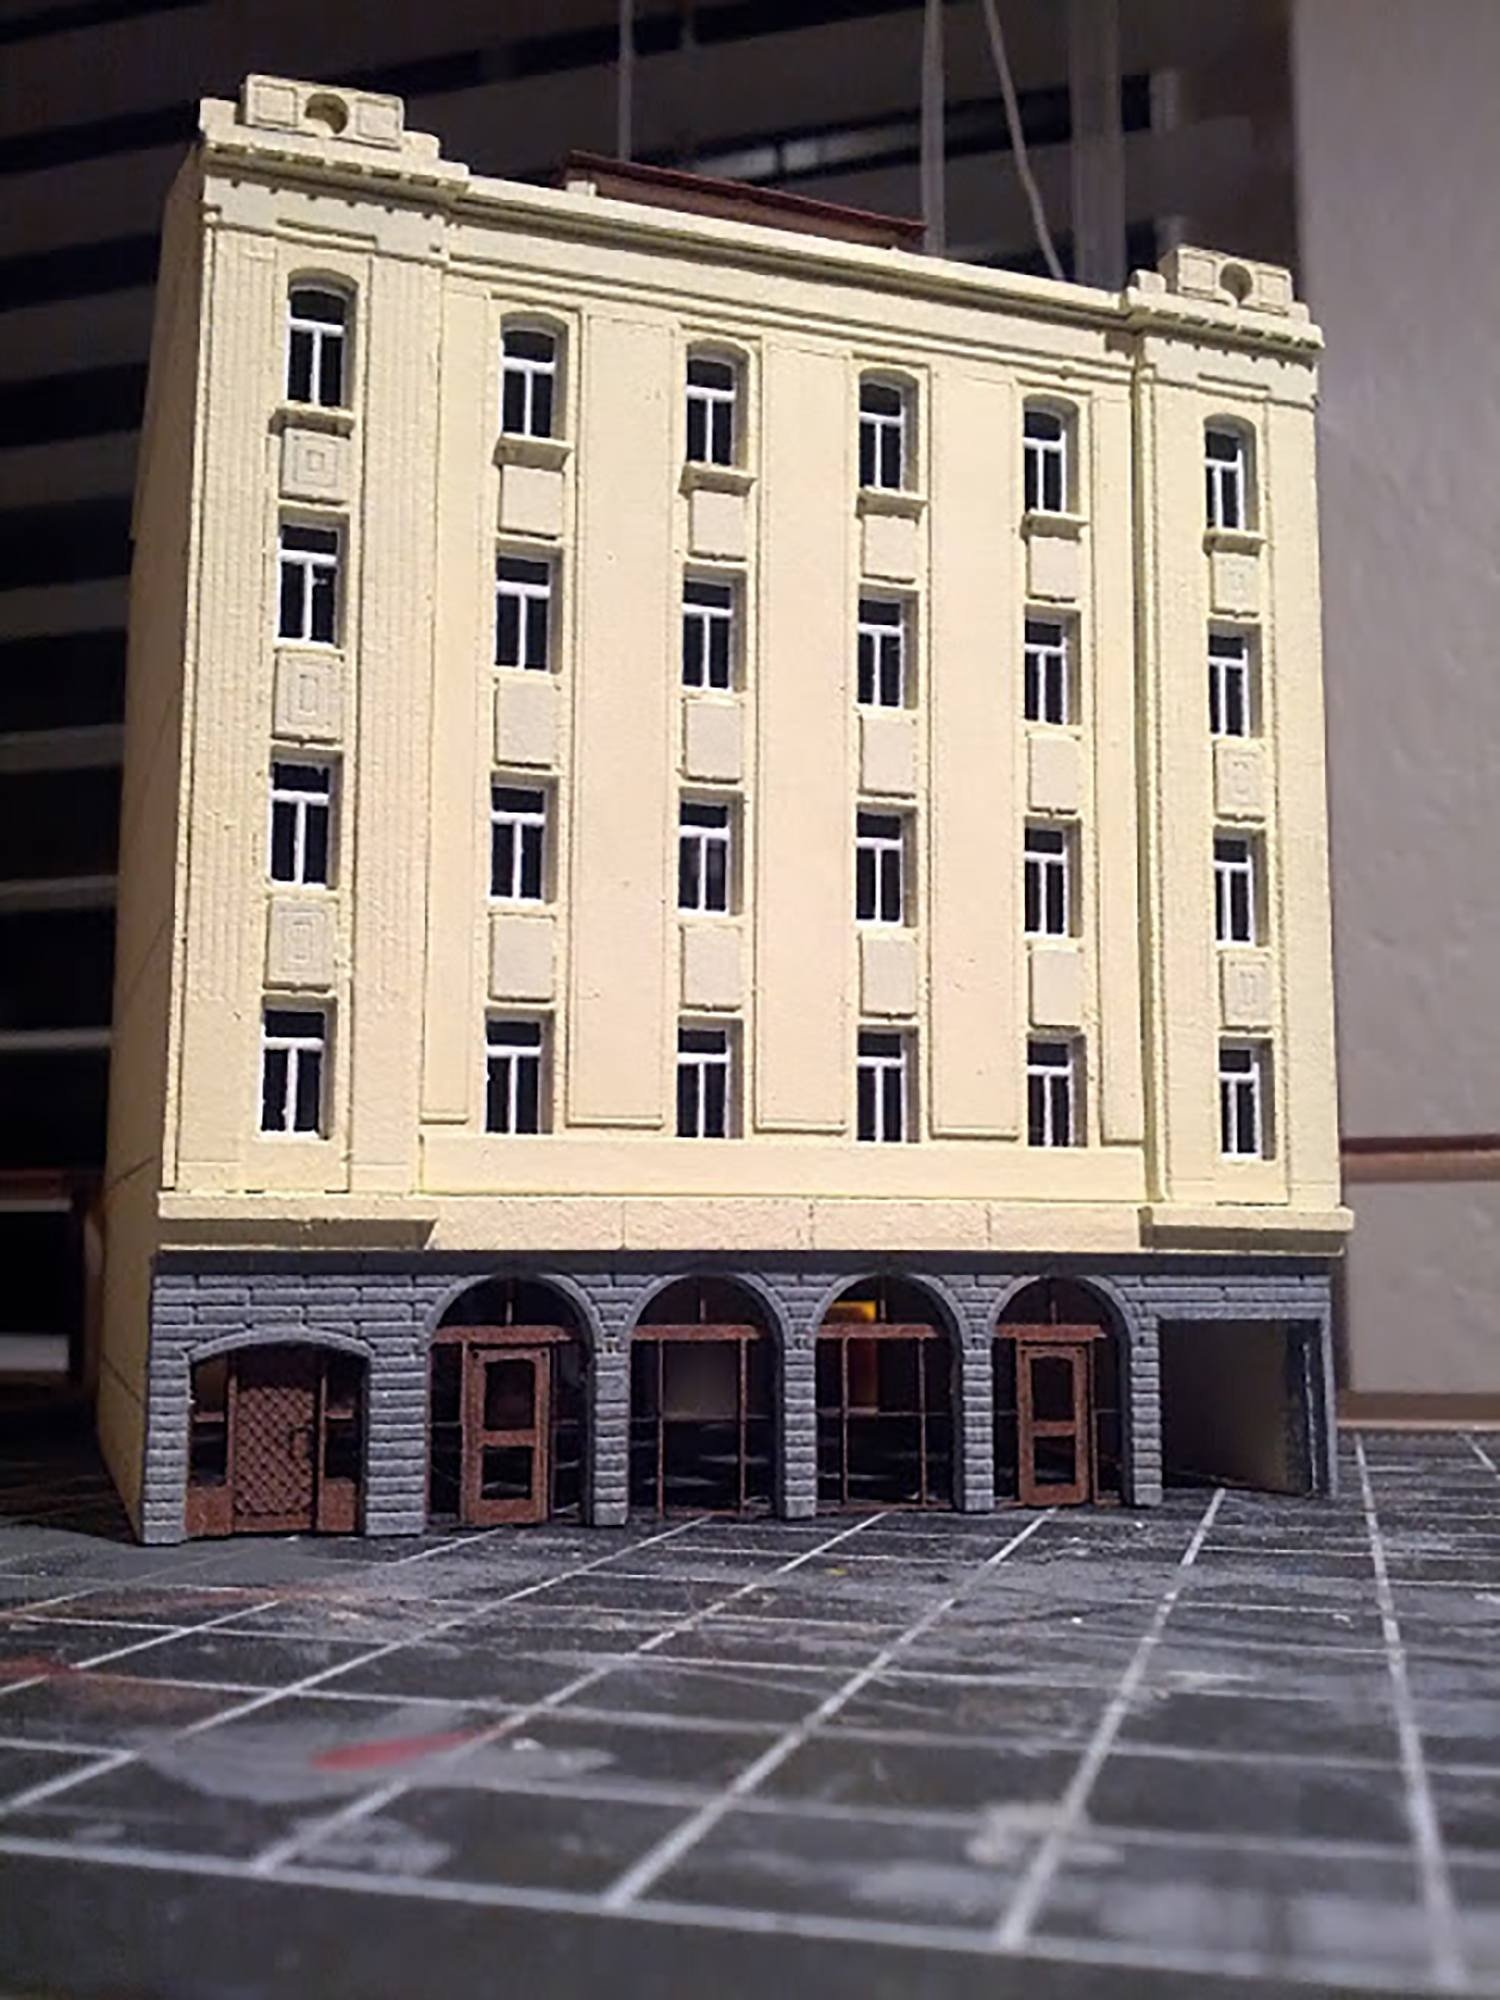 Model of hotel in HO railroad scale